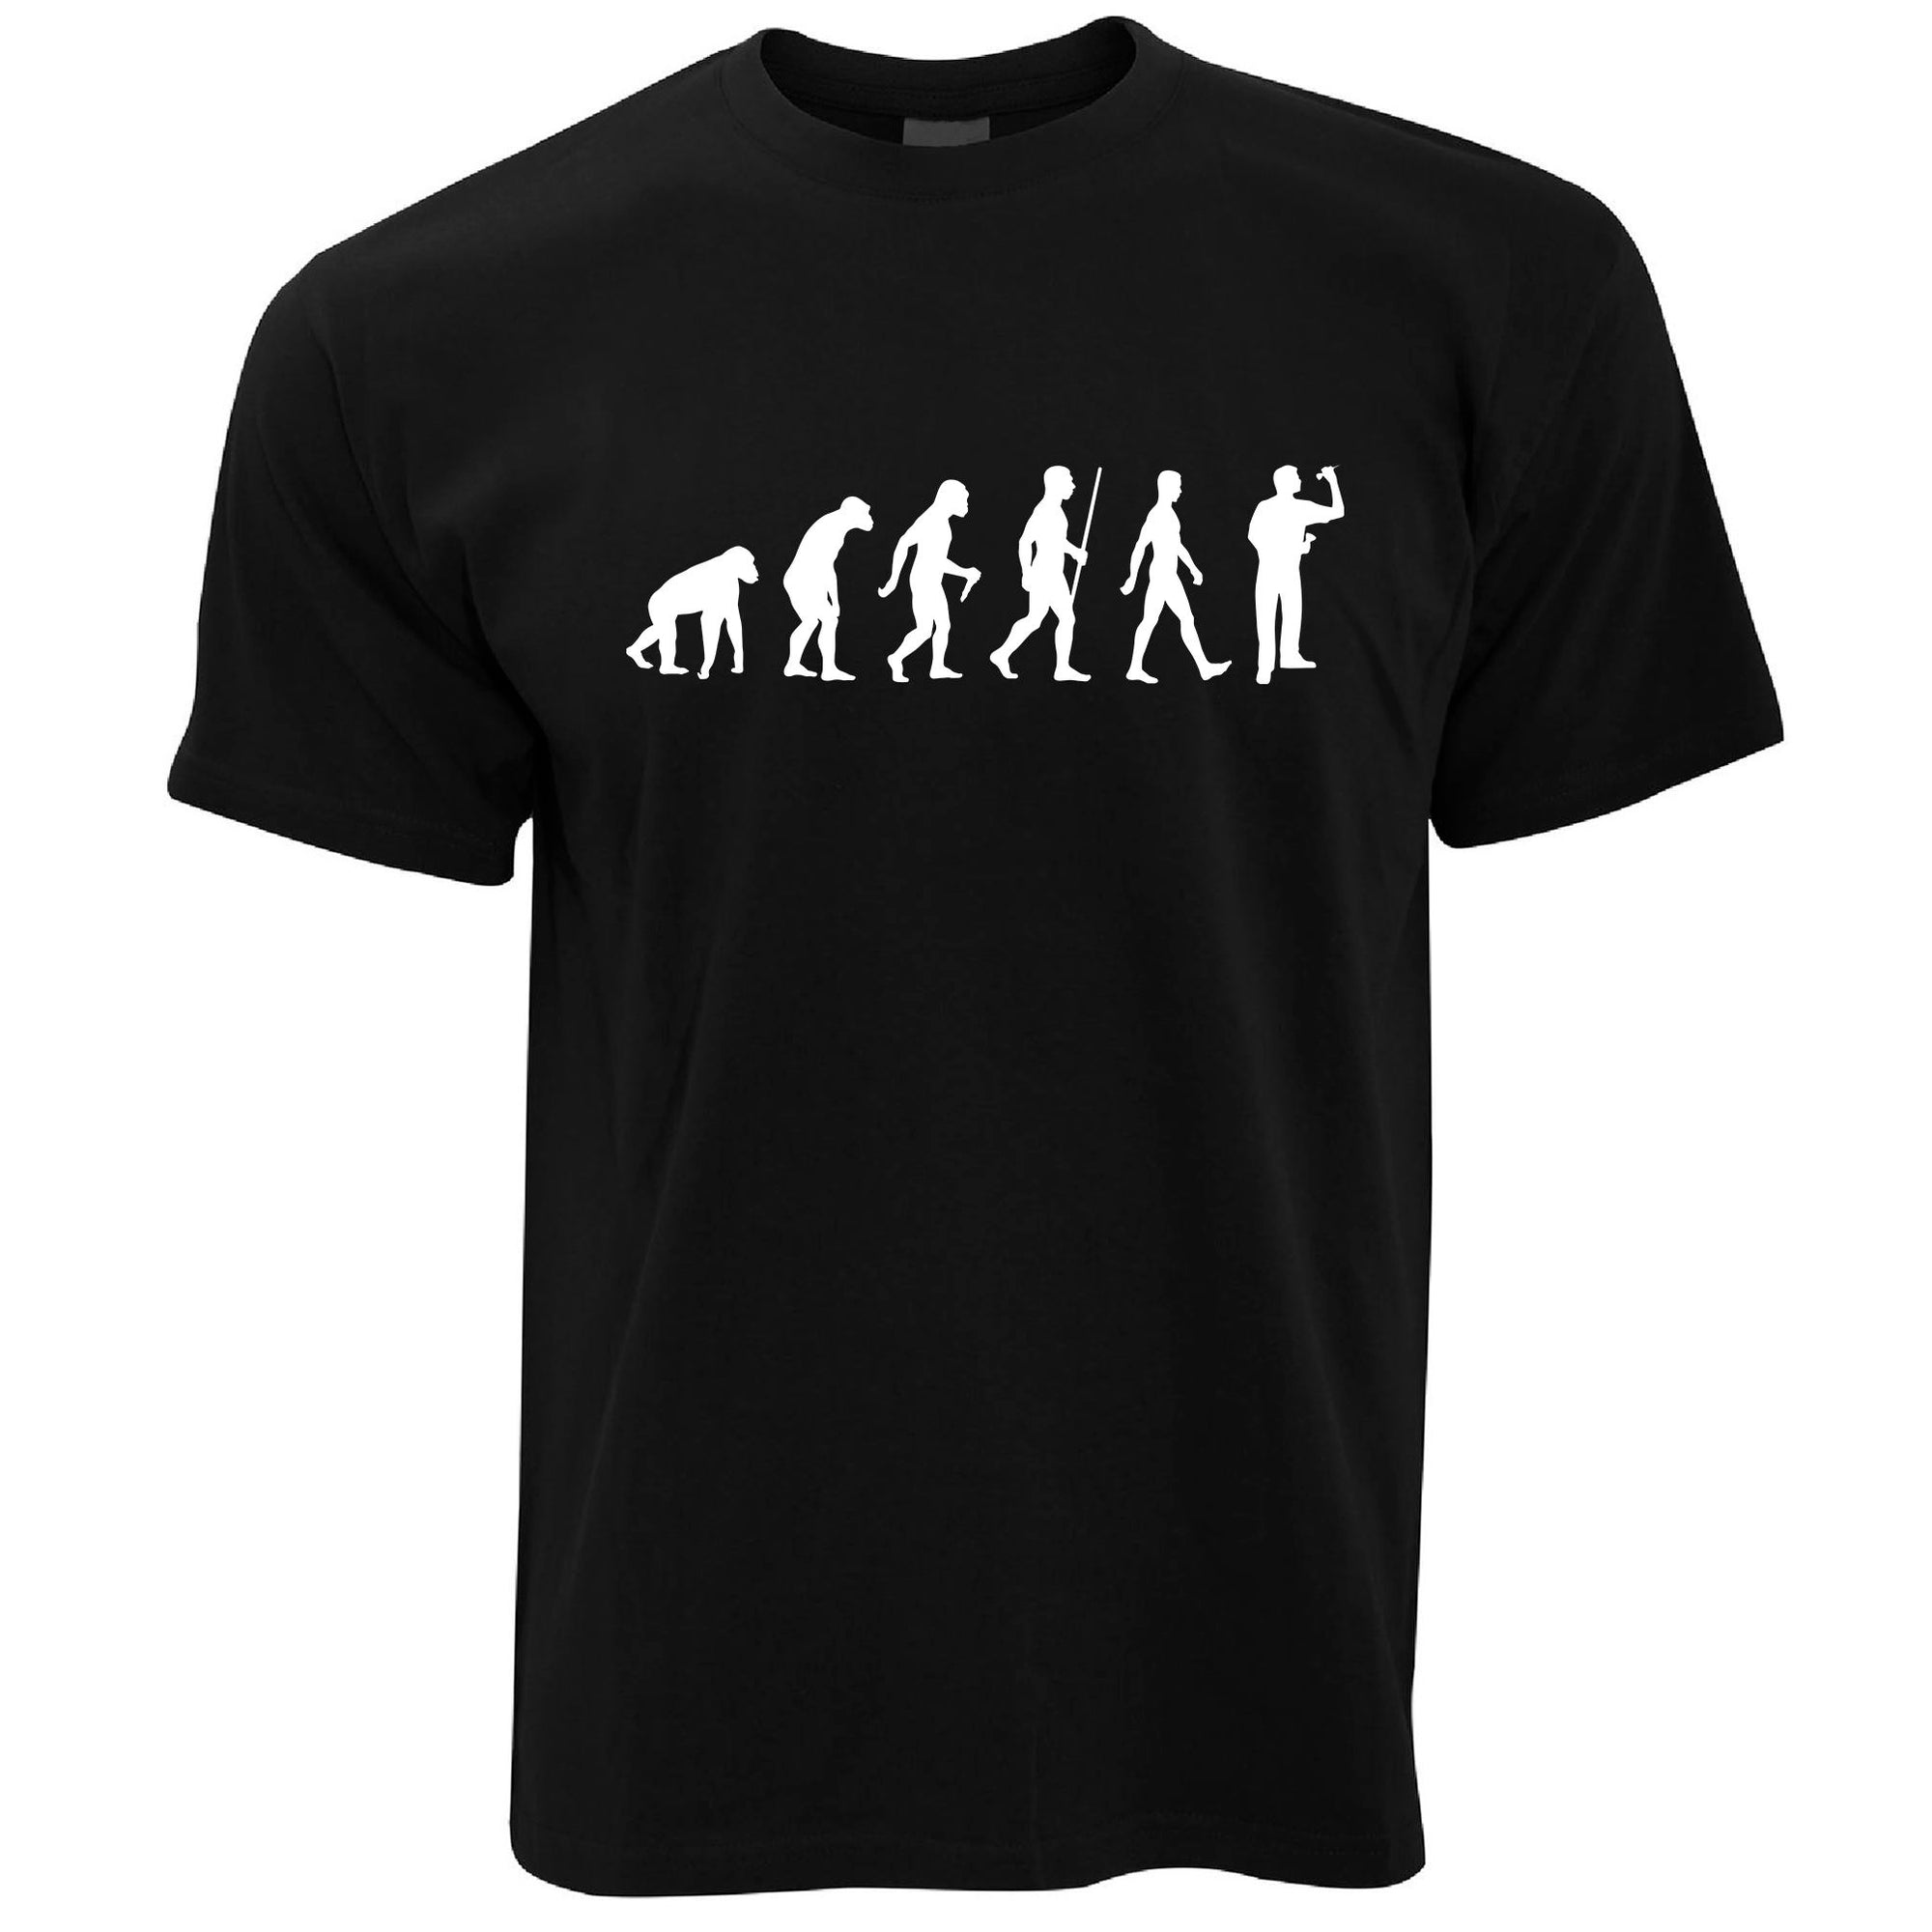 Mens Darts T Shirt Evolution of a Darts Player Tee